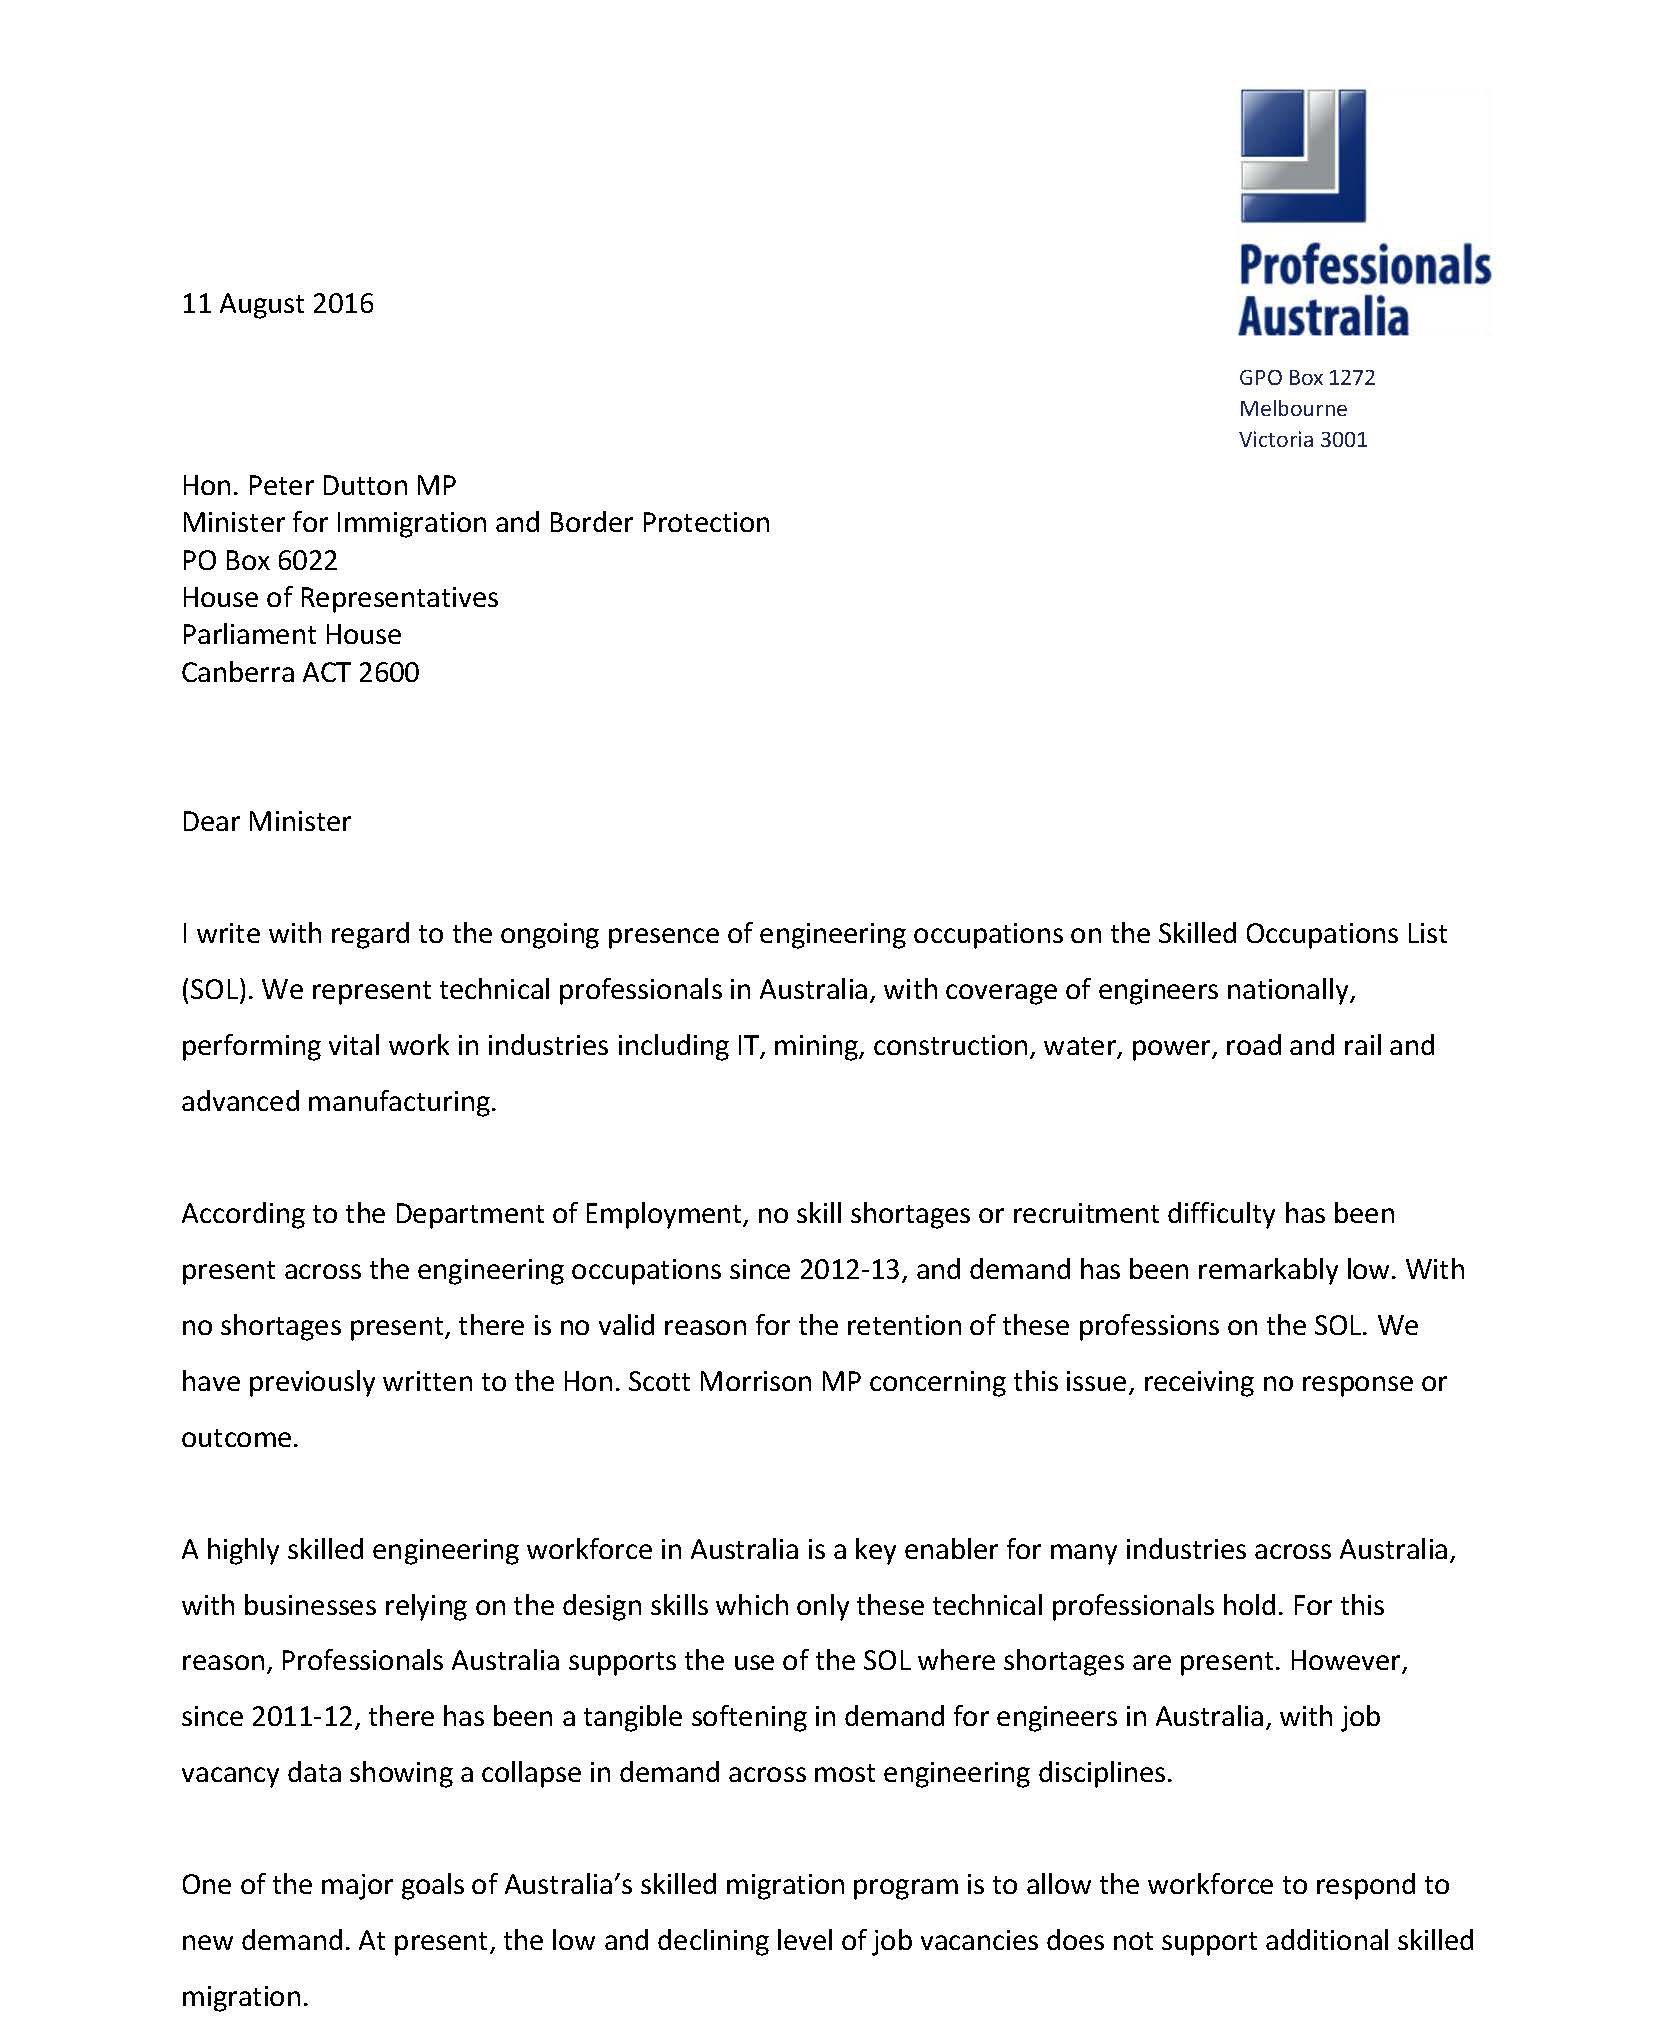 2_Letter_to_Minister_Dutton_on_SOL_Page_11.jpg